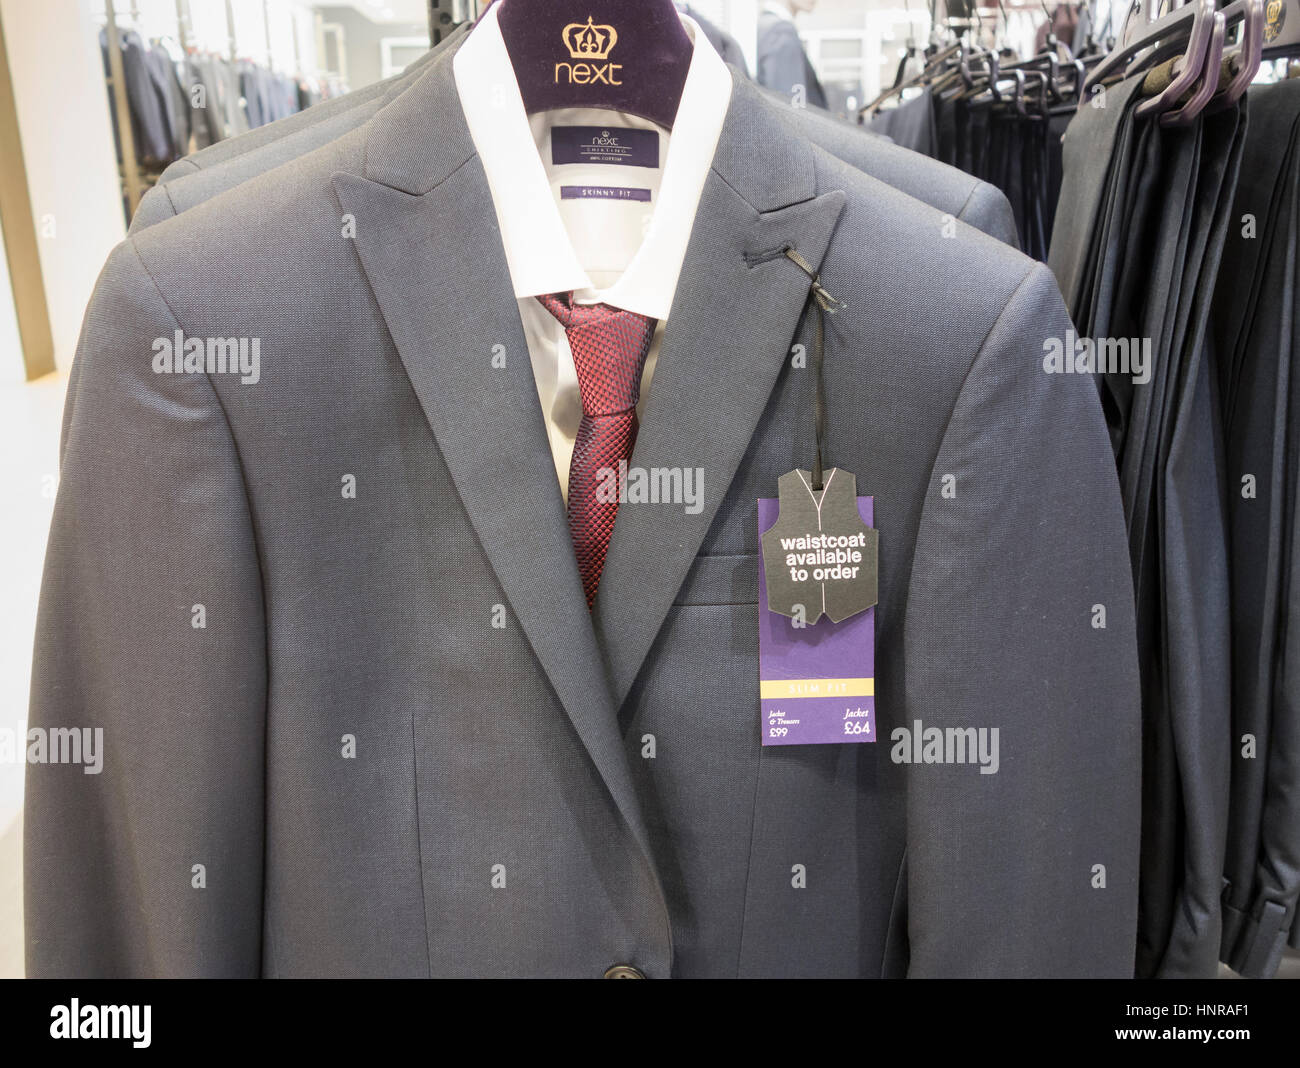 Suit in Next store. UK - Stock Image